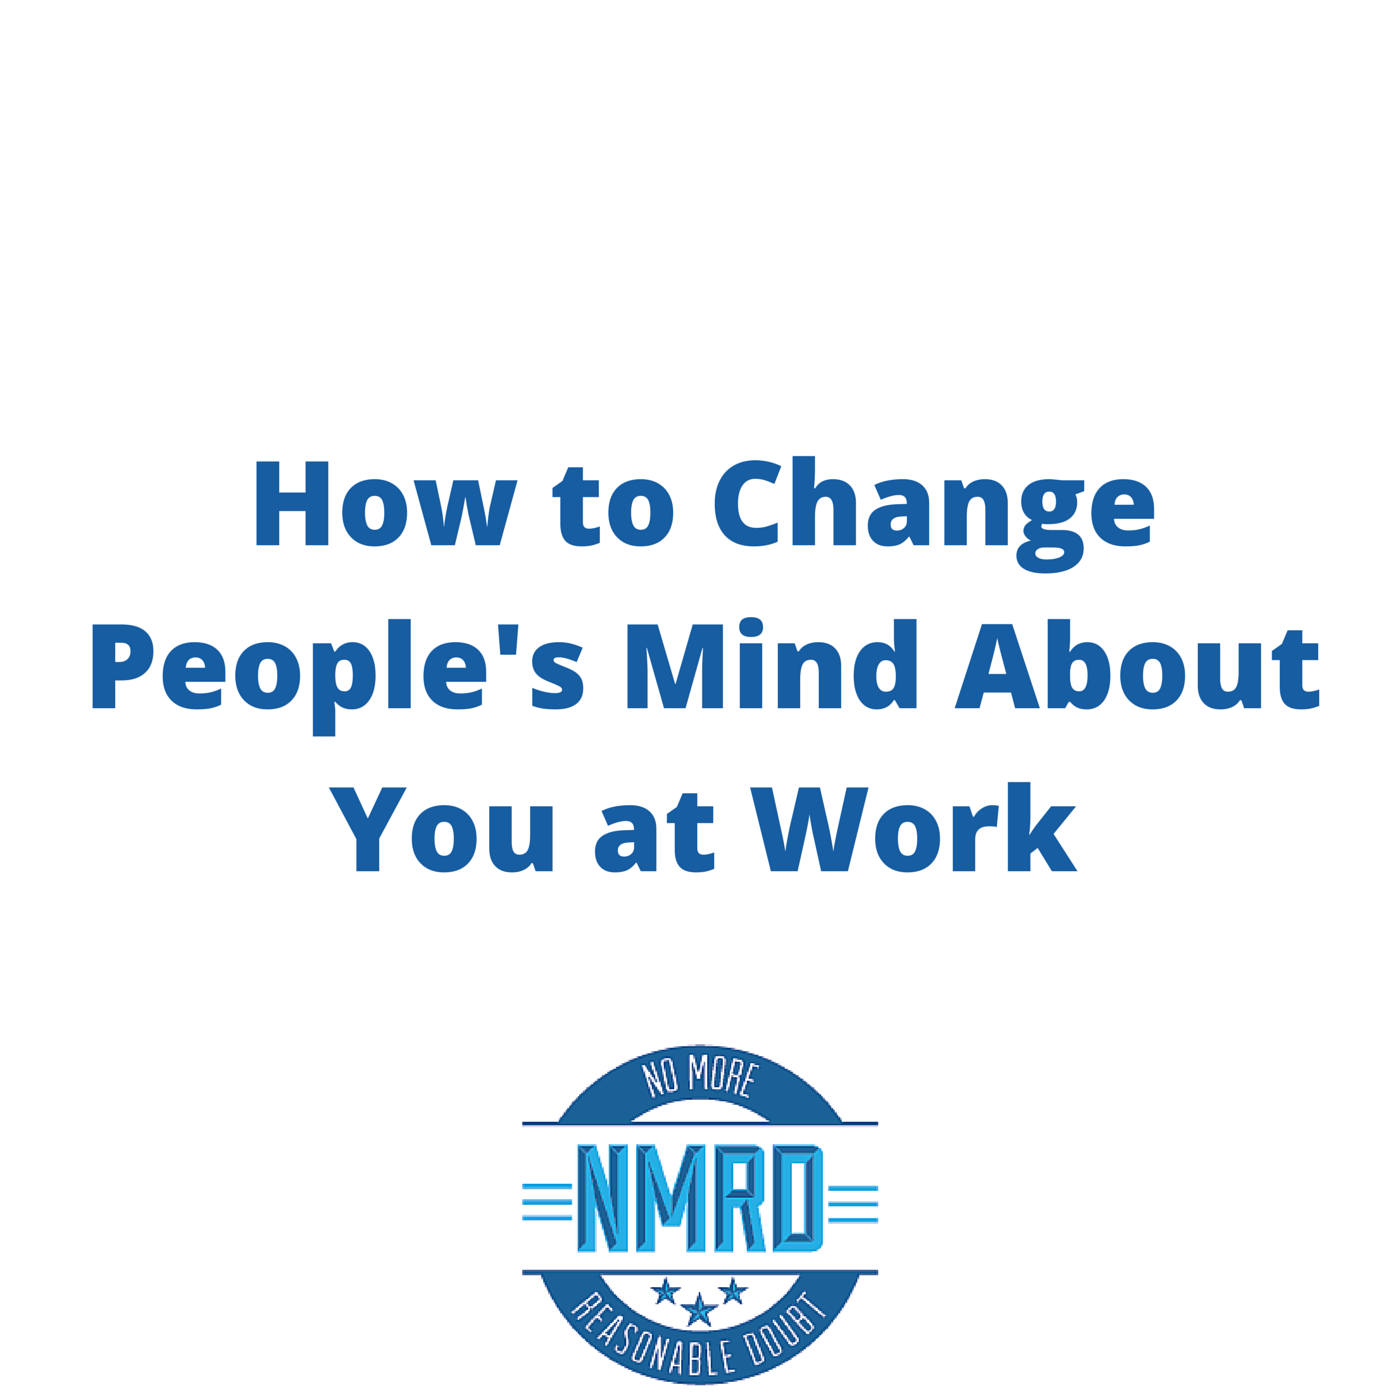 How to Change People's Mind About You at Work